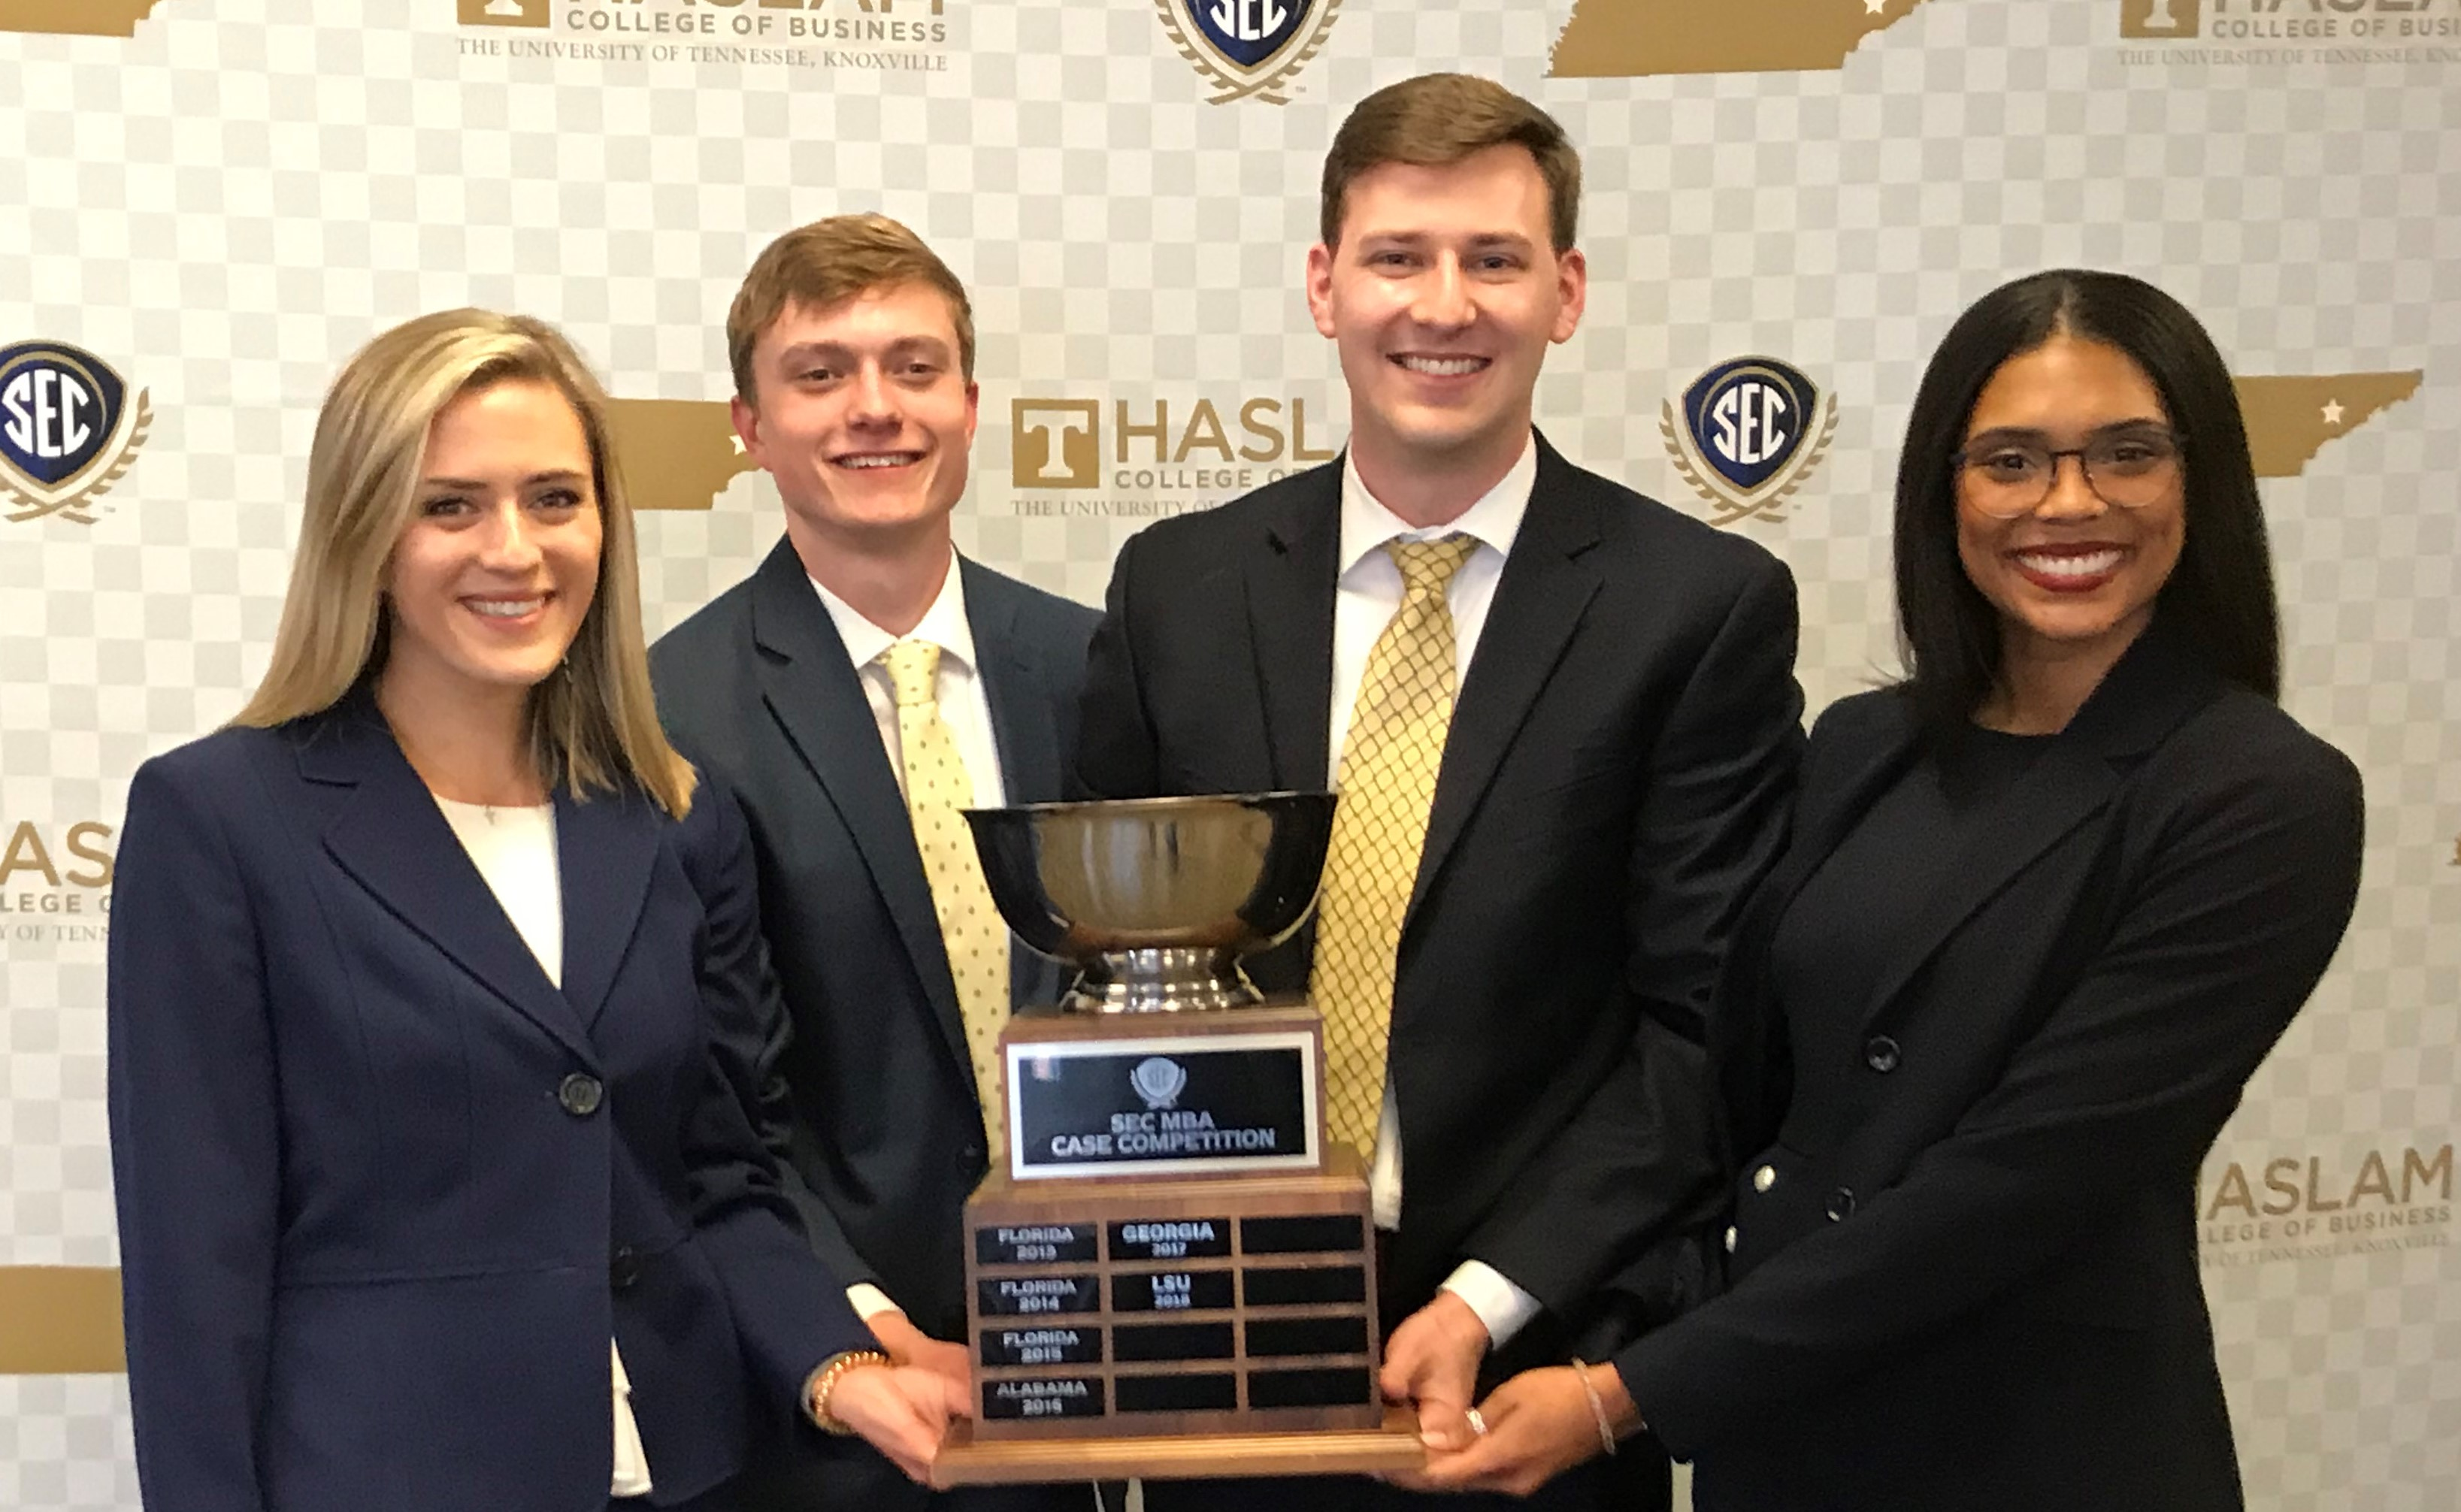 University of Alabama Wins 2019 SEC MBA Case Competition